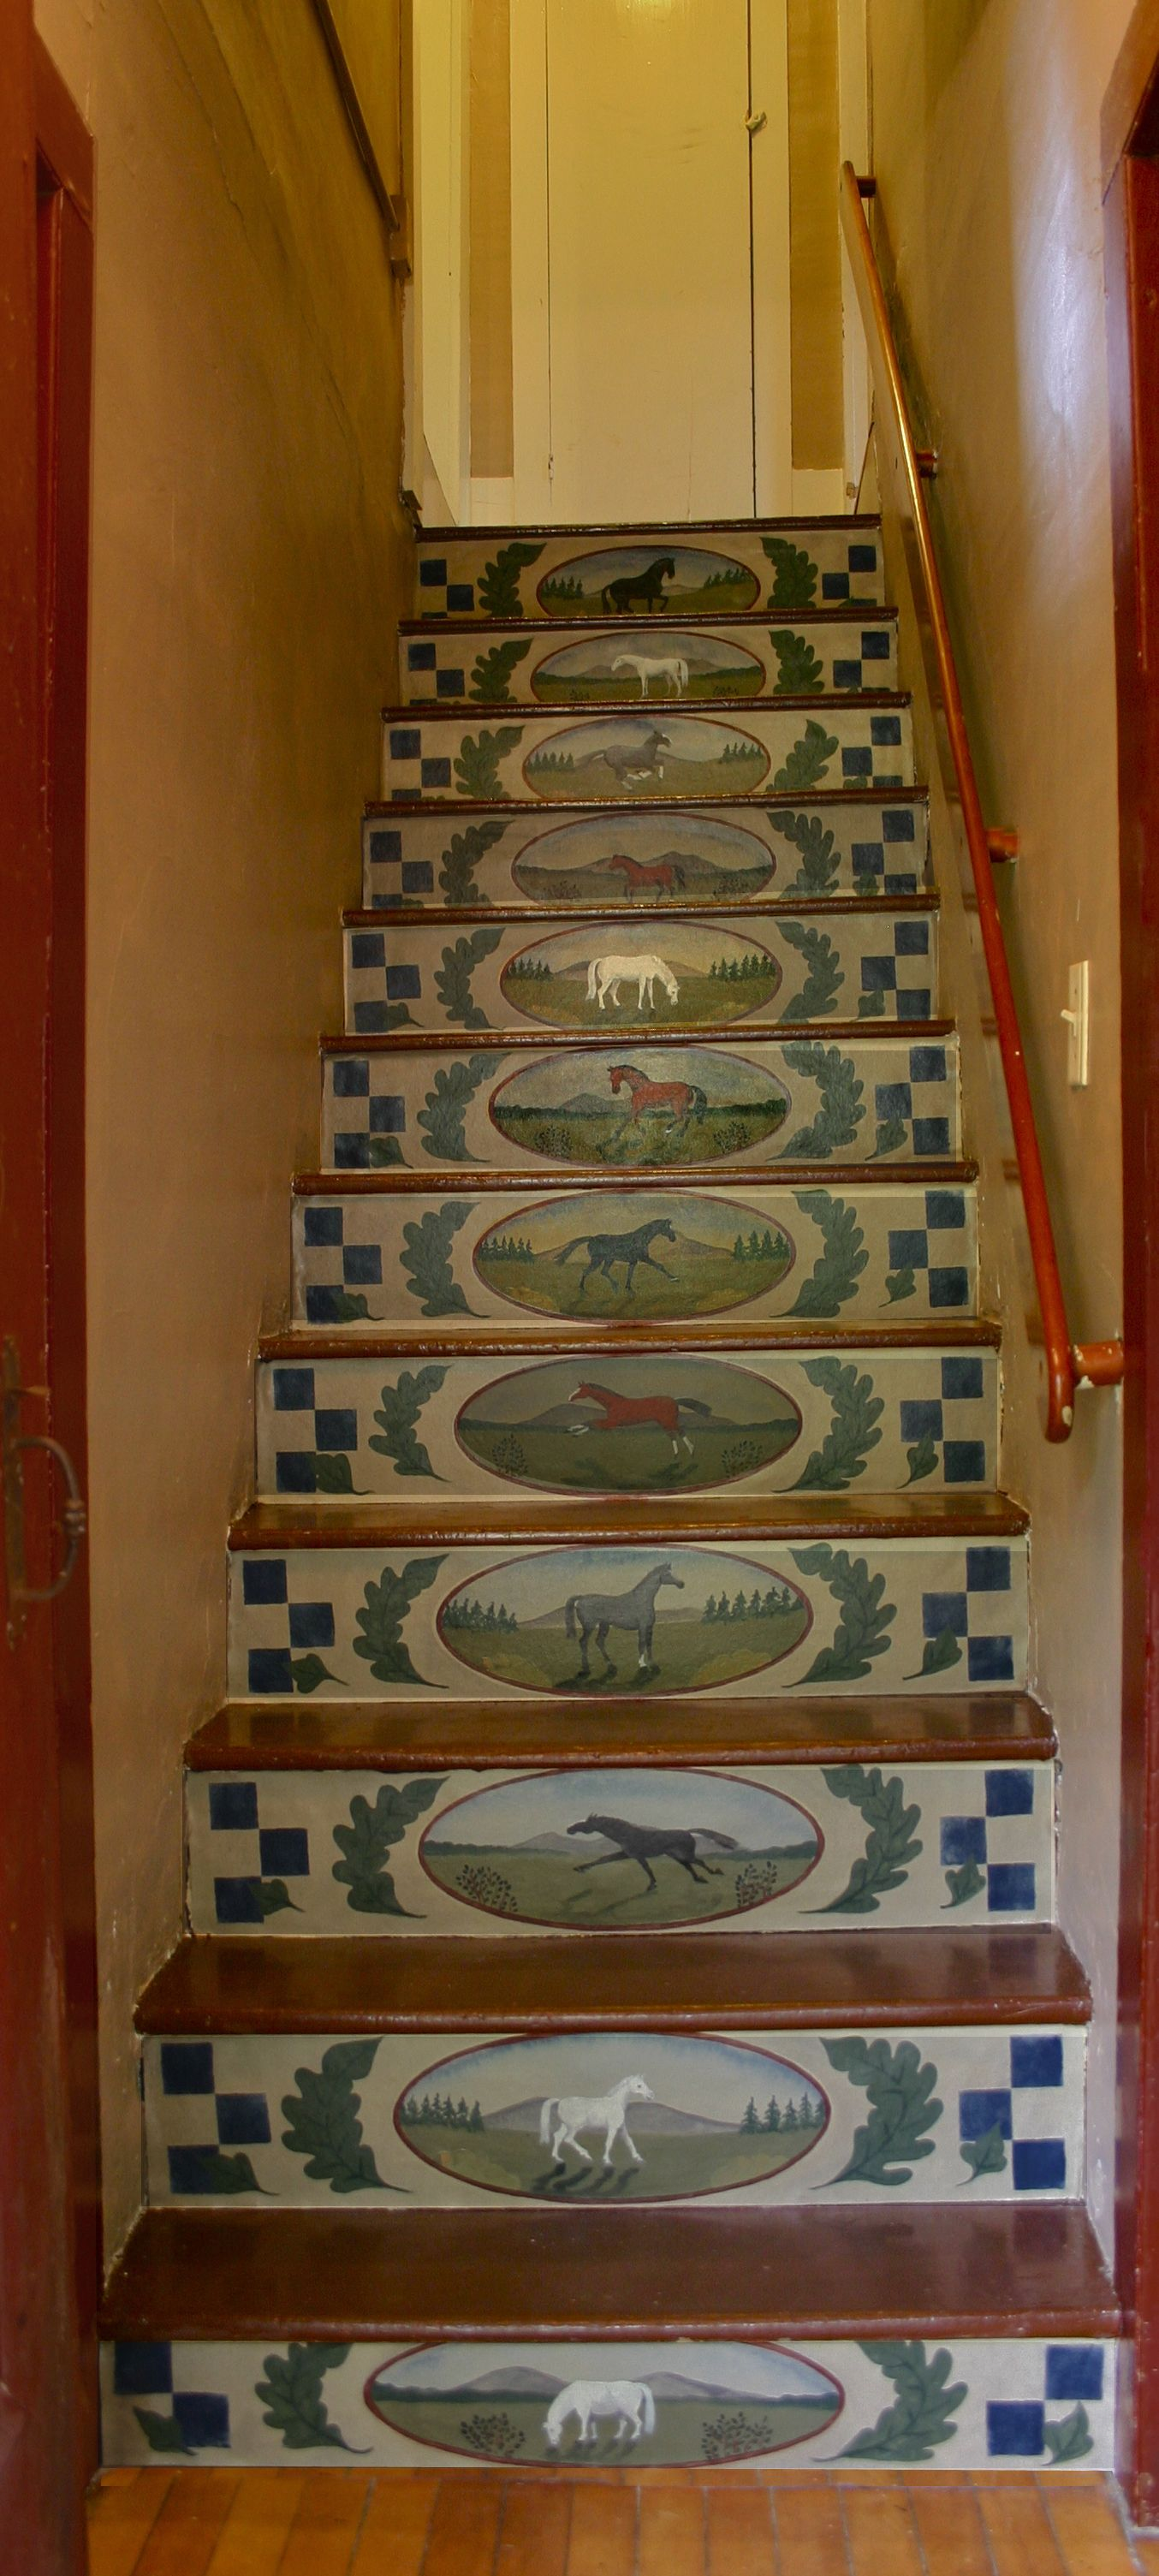 Stenciled Stair Risers | Home » Blog » News » Painted Canvas Stair Risers